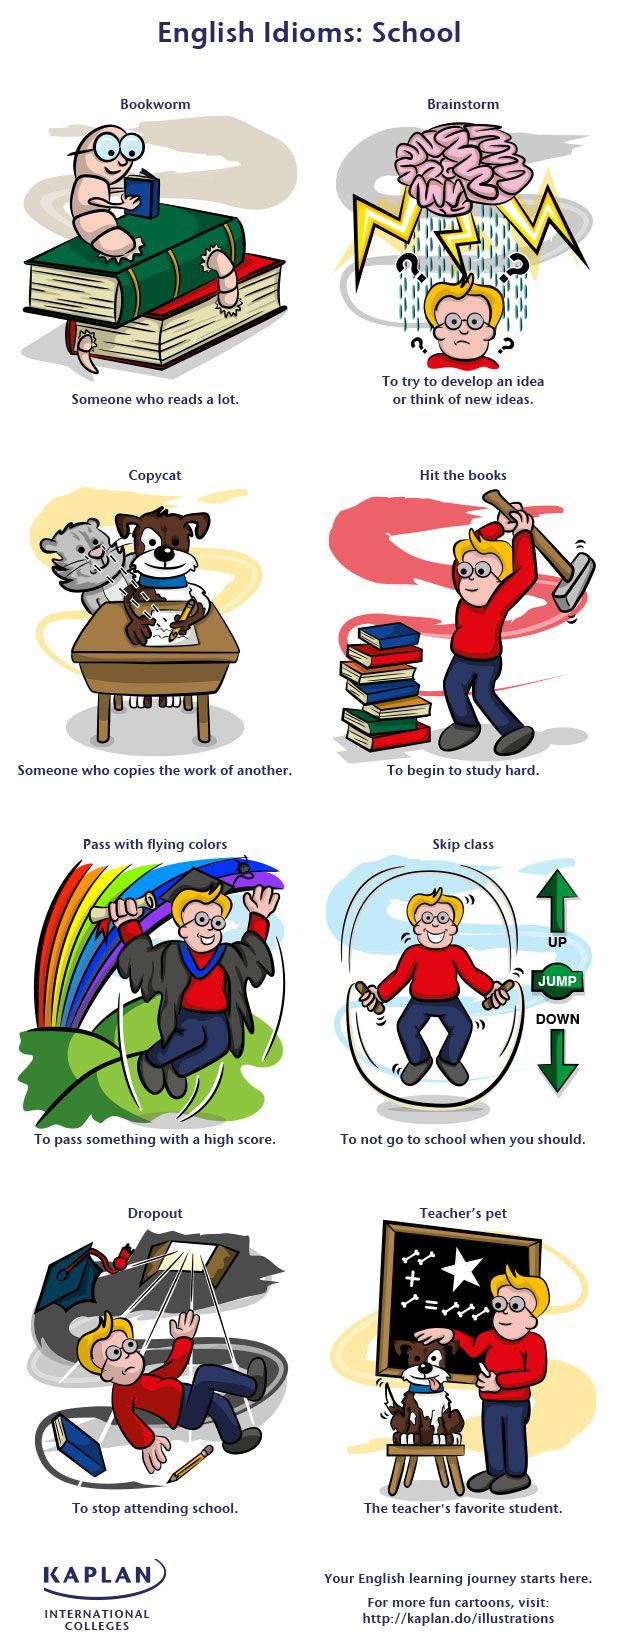 School idioms in English are popular with students and teachers alike. Have a look at our fun school idioms illustration!